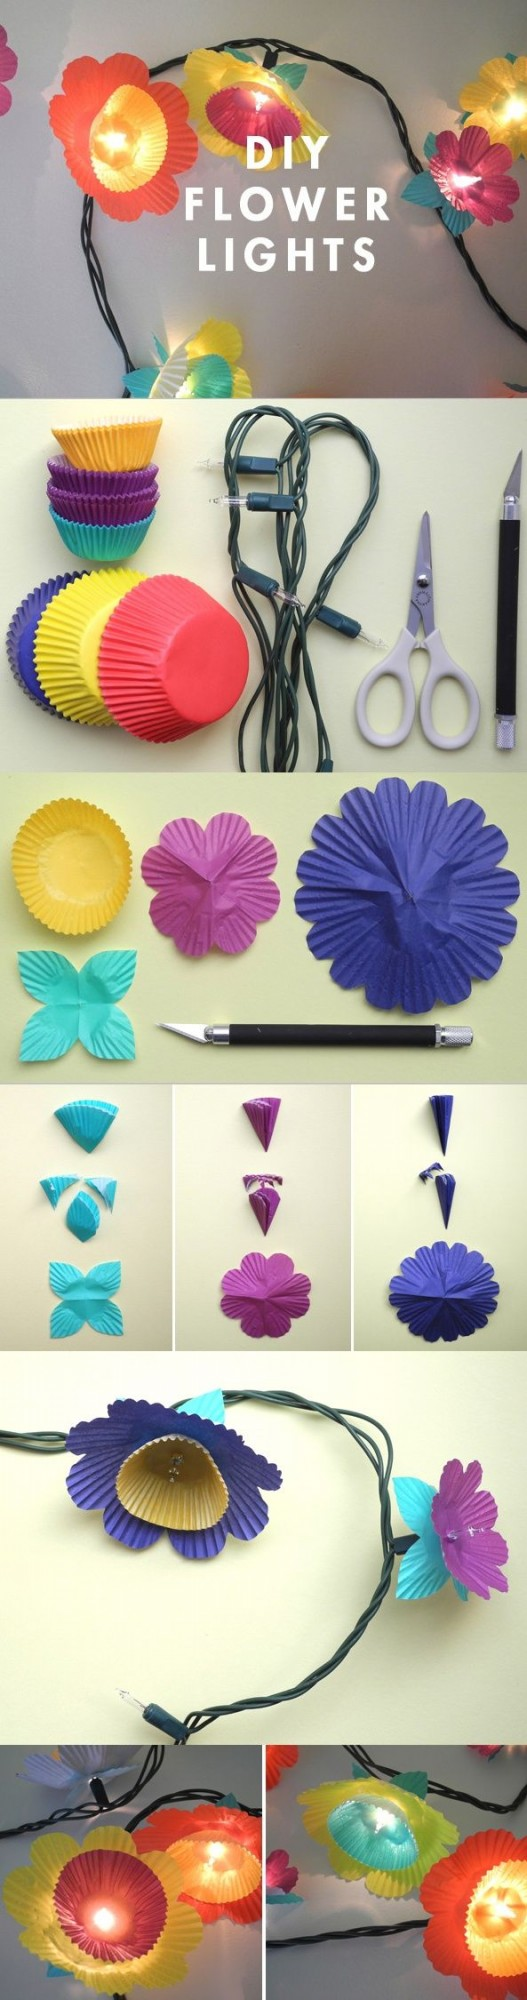 23 Cute and Simple DIY Home Crafts Tutorials (2)